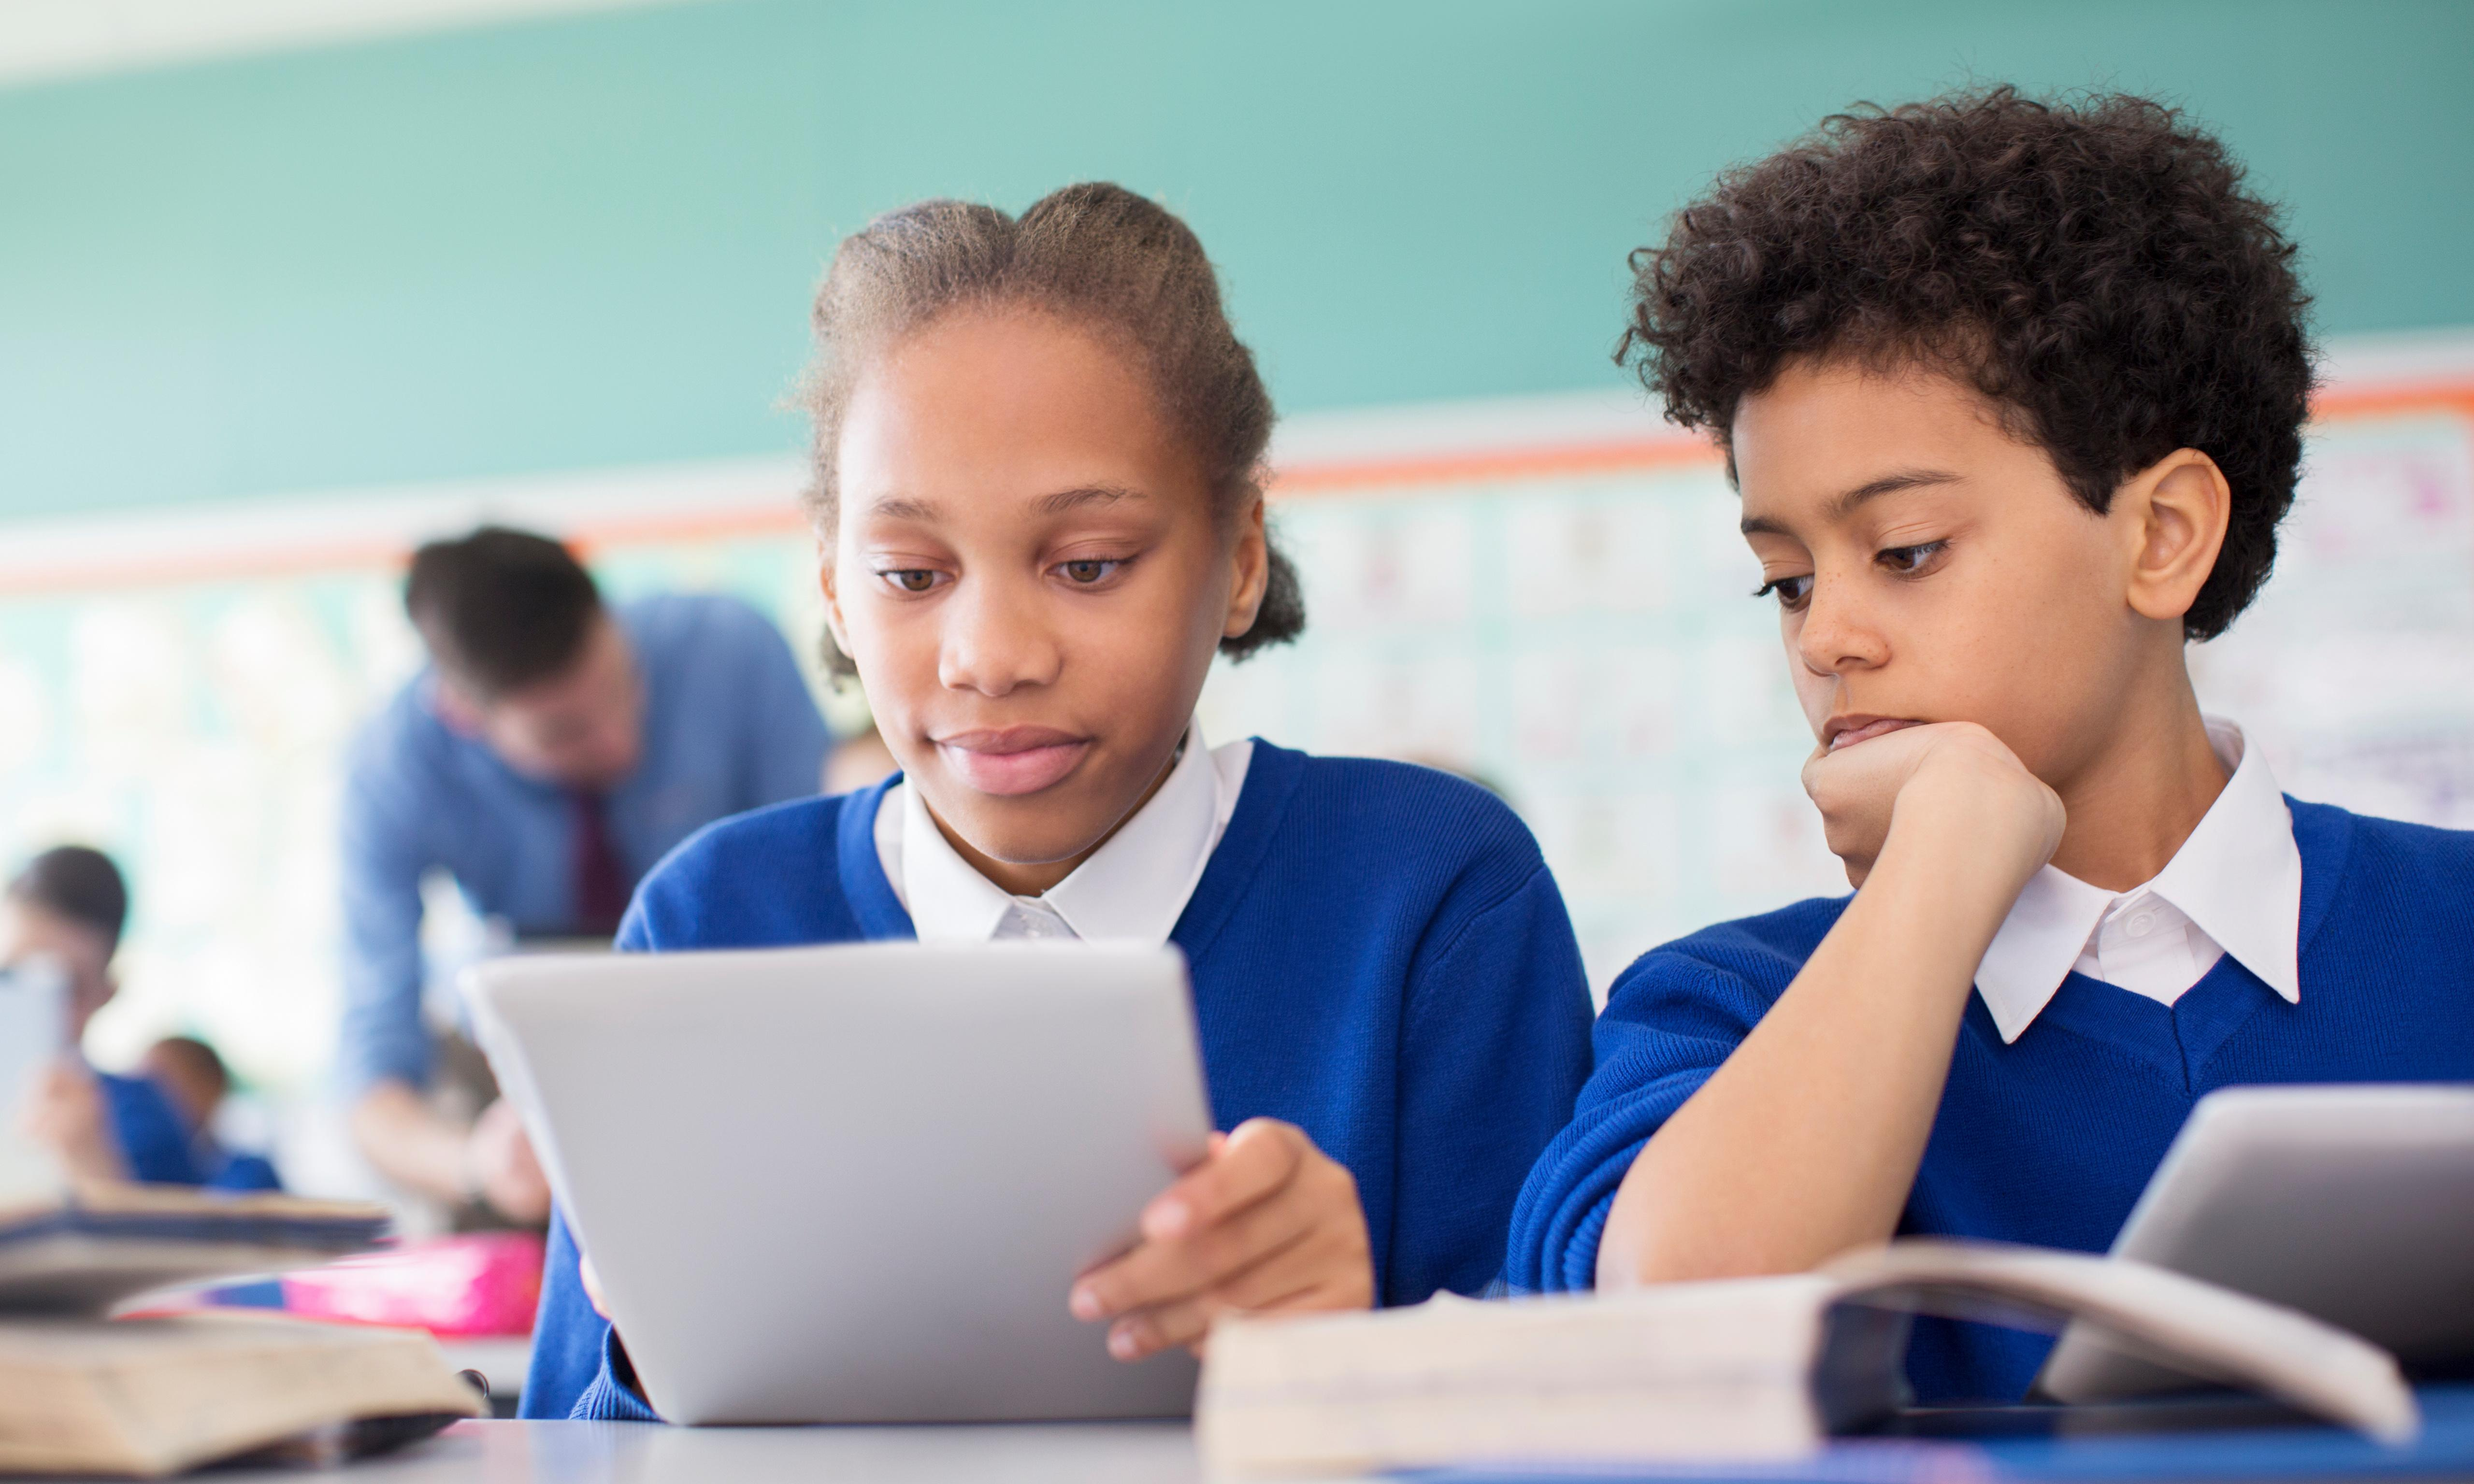 White teachers like me should not be policing black pupils' hair